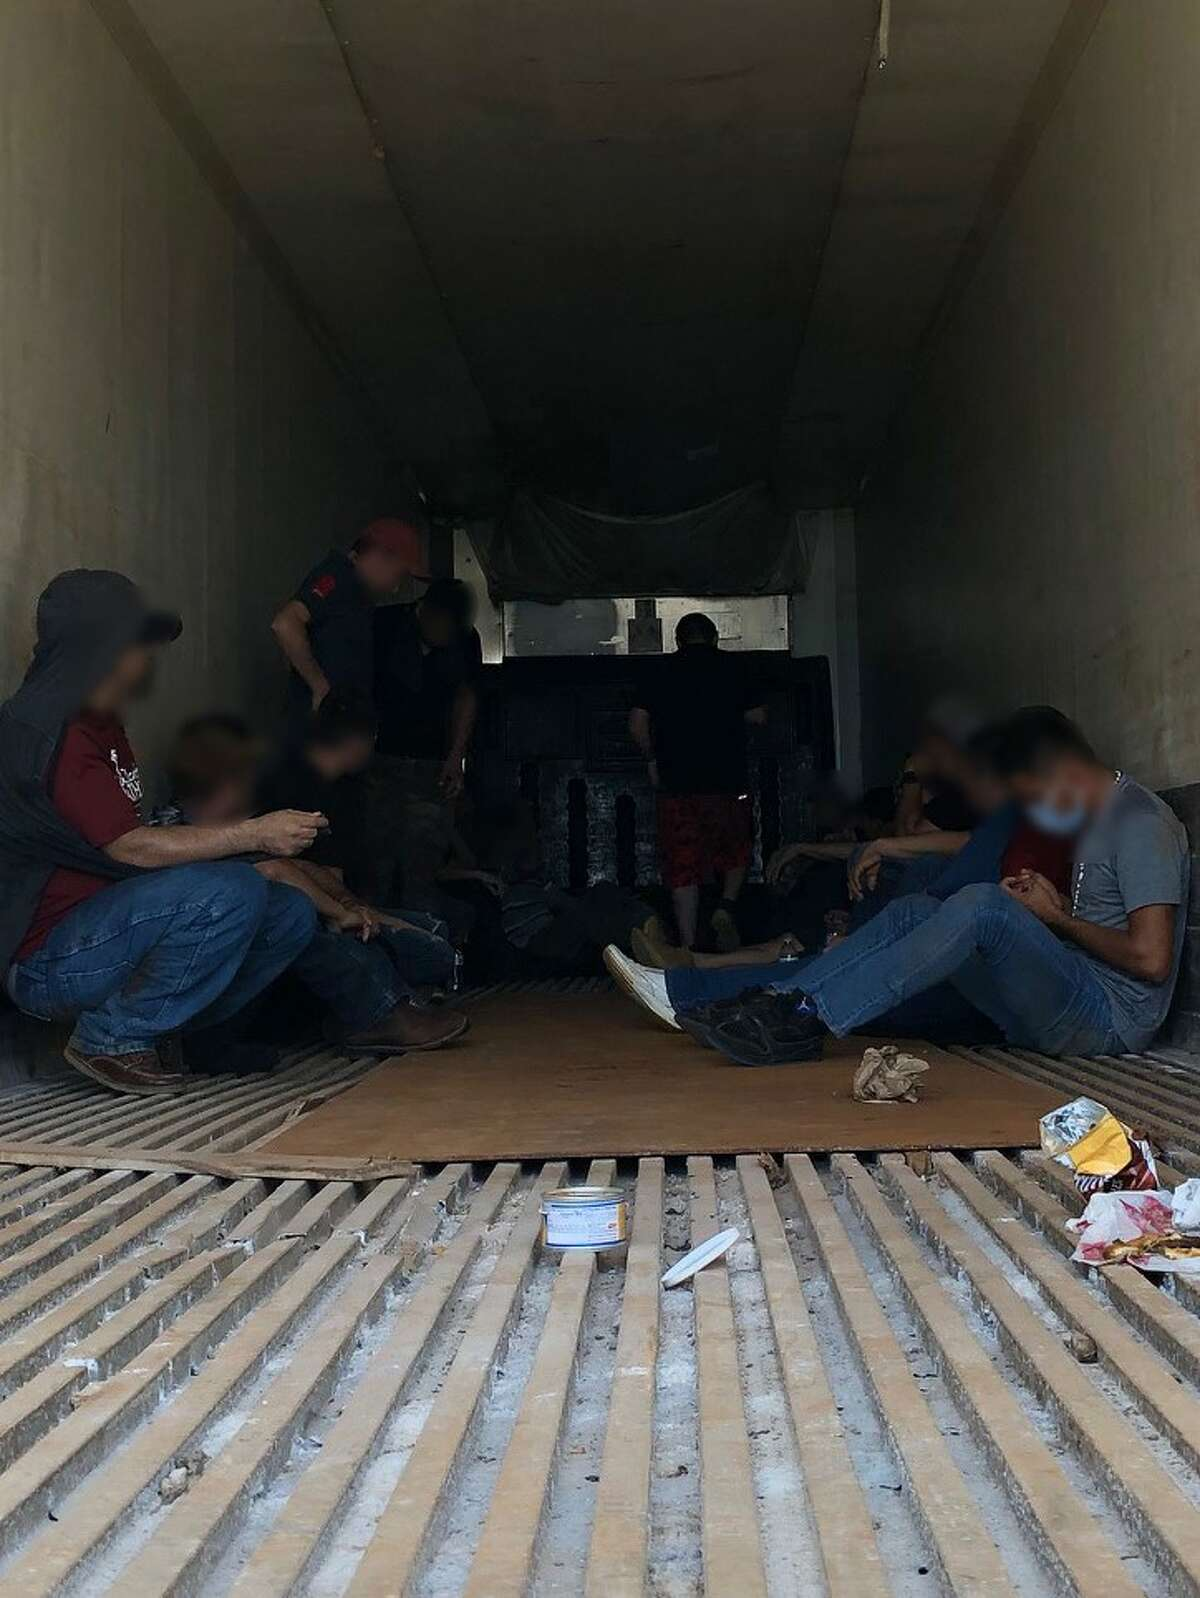 Shown are the 23 immigrants discovered inside the trailer of a truck that was stuck on railroad tracks near mile marker 14 of I-35.